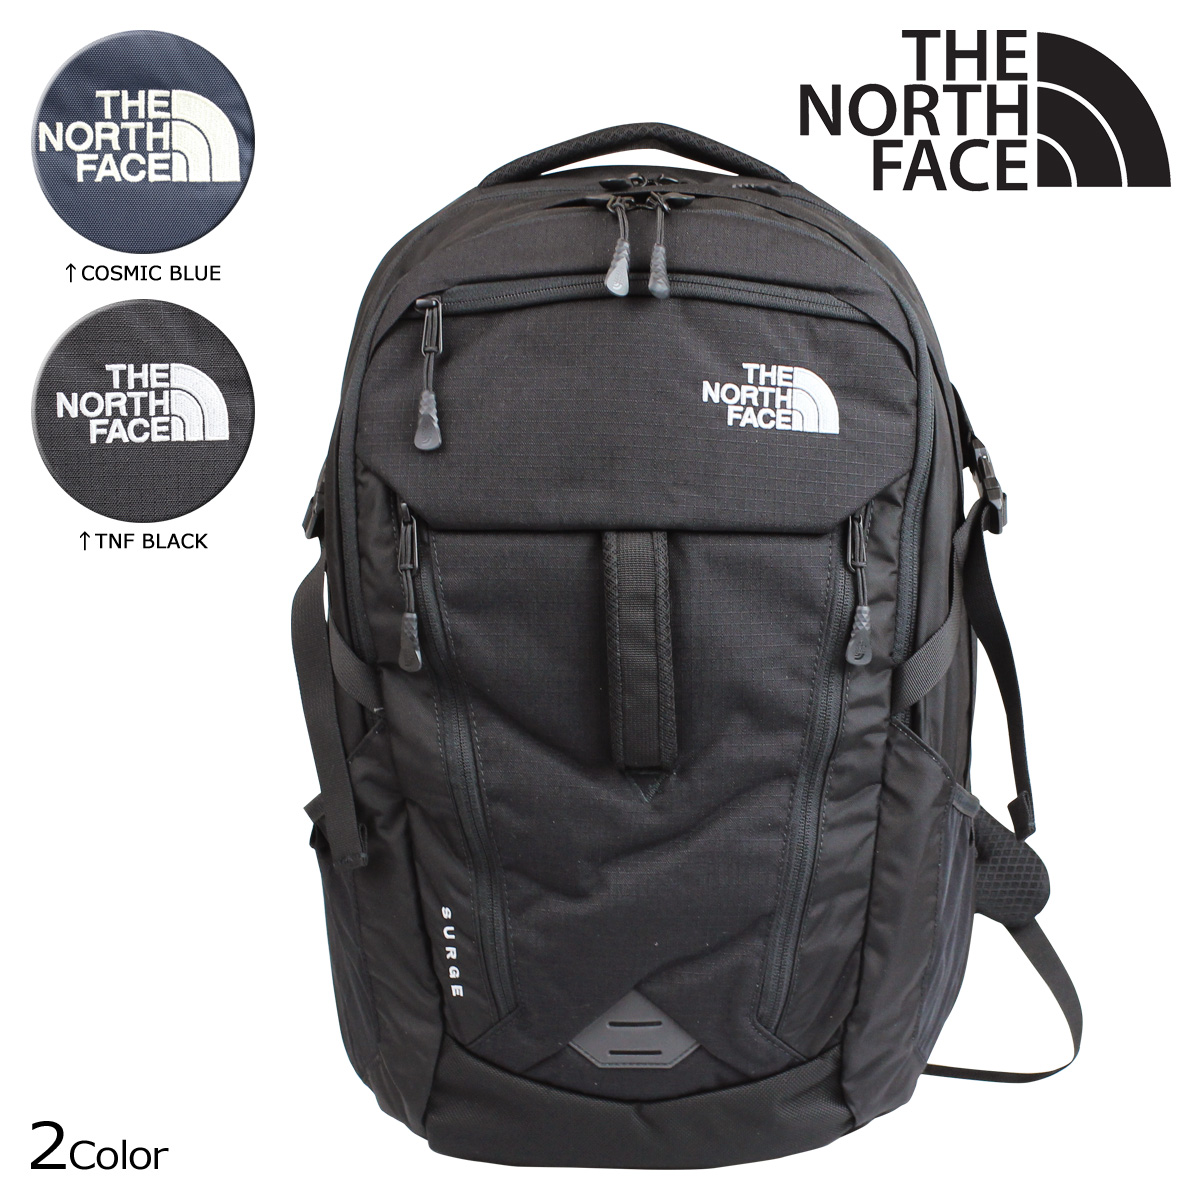 Whats up Sports | Rakuten Global Market: THE NORTH FACE north face rucksack backpack SURGE ...